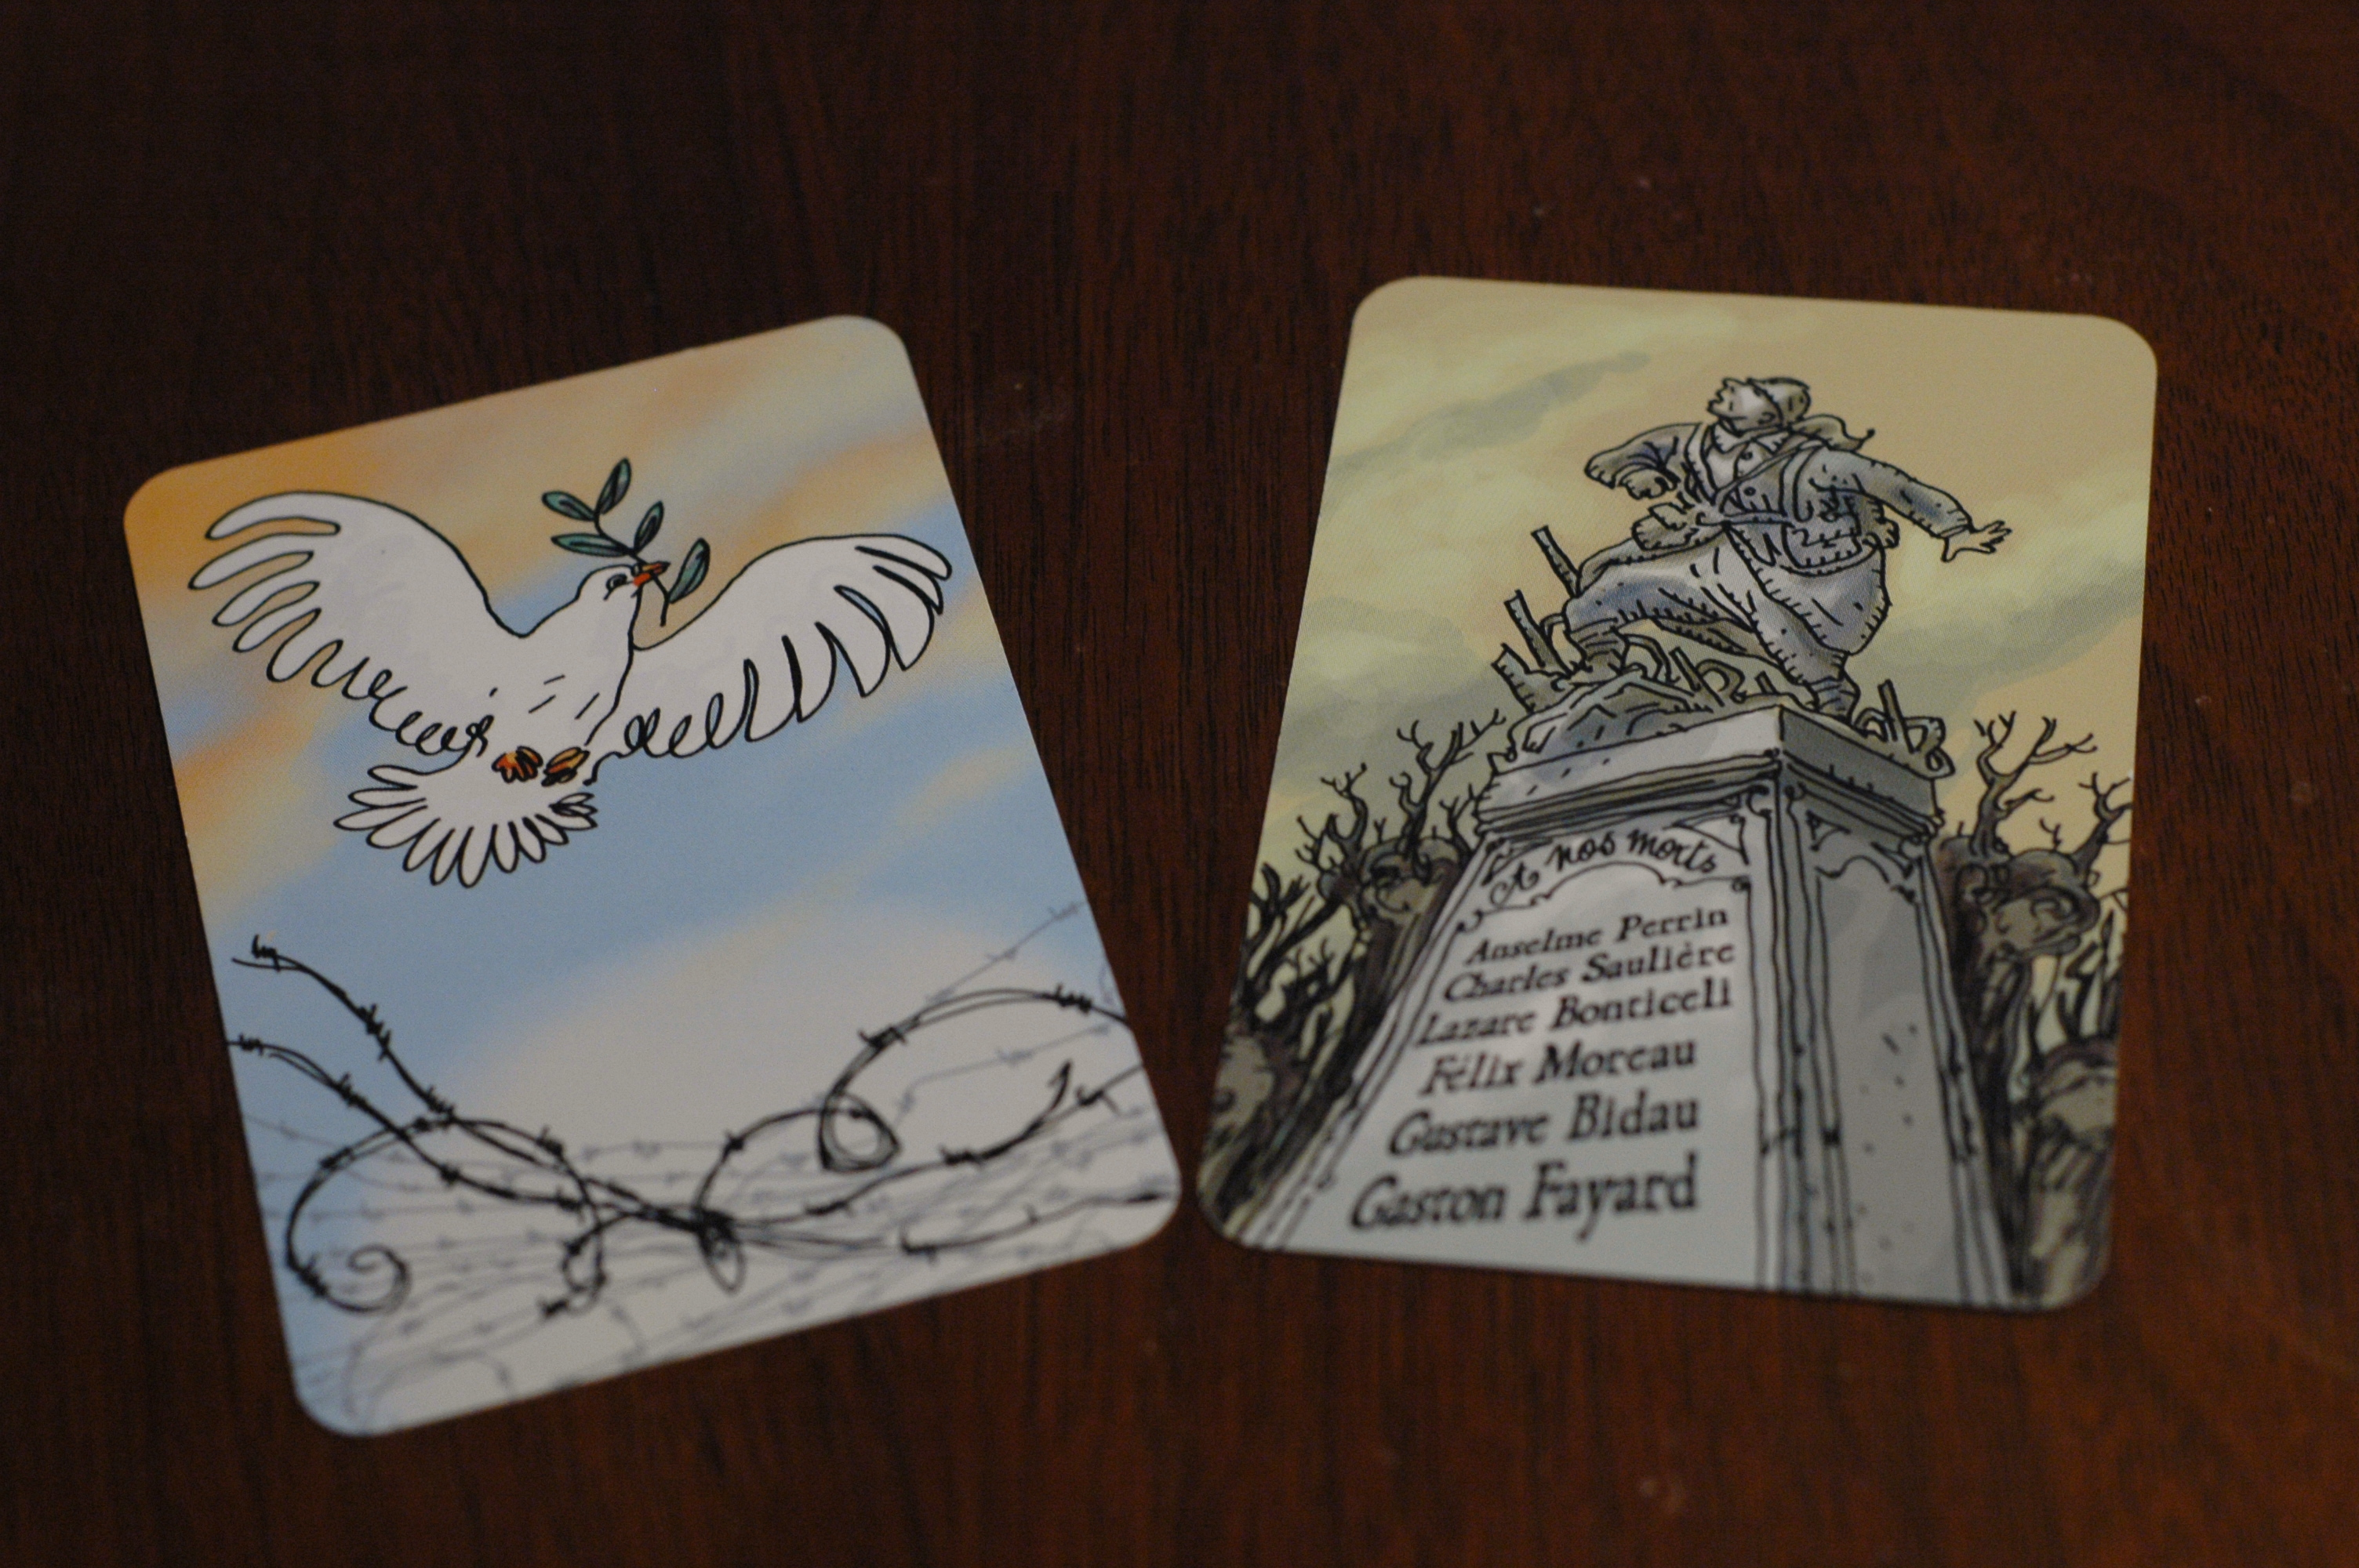 Revealing the Monument card (right) ends the game in a loss. If the Peace card is revealed, all players must empty their hands before the game is won. Photo used with permission of the author and used for purposes of critique.